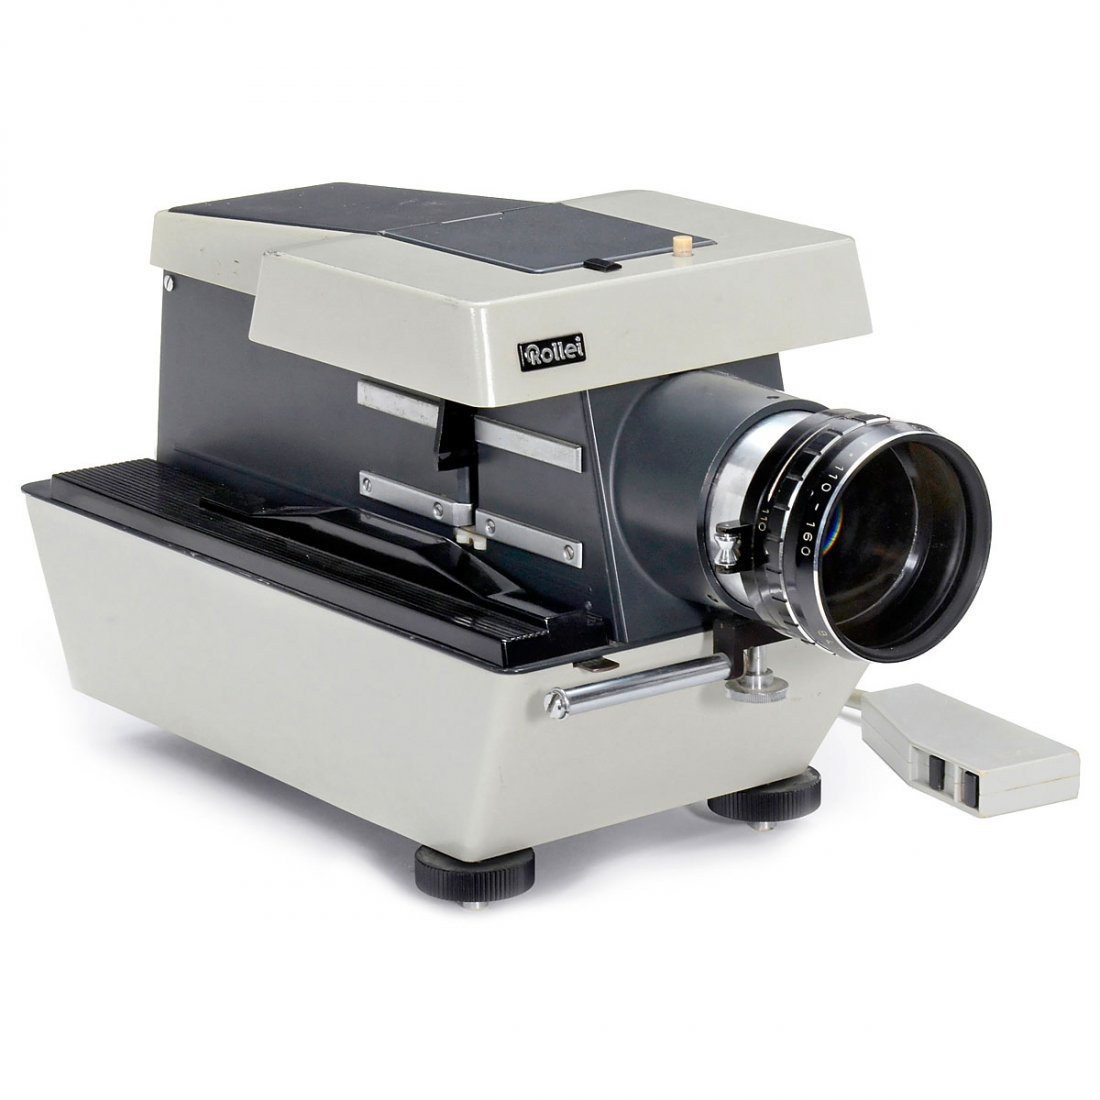 Rollei P11 Universal Projector